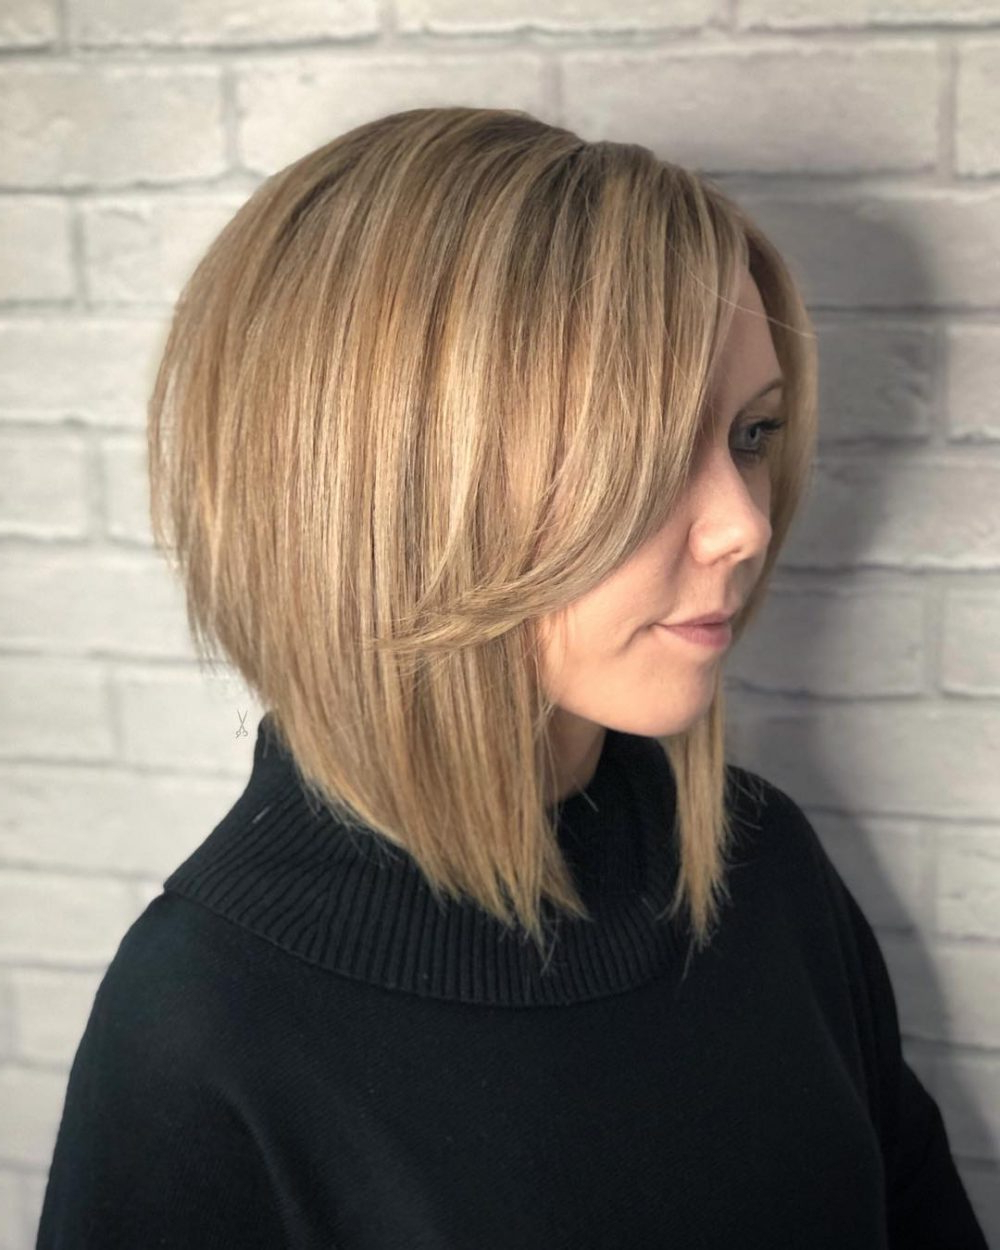 34 Greatest Short Haircuts And Hairstyles For Thick Hair For 2018 Within Short Haircuts Bobs Thick Hair (View 13 of 25)